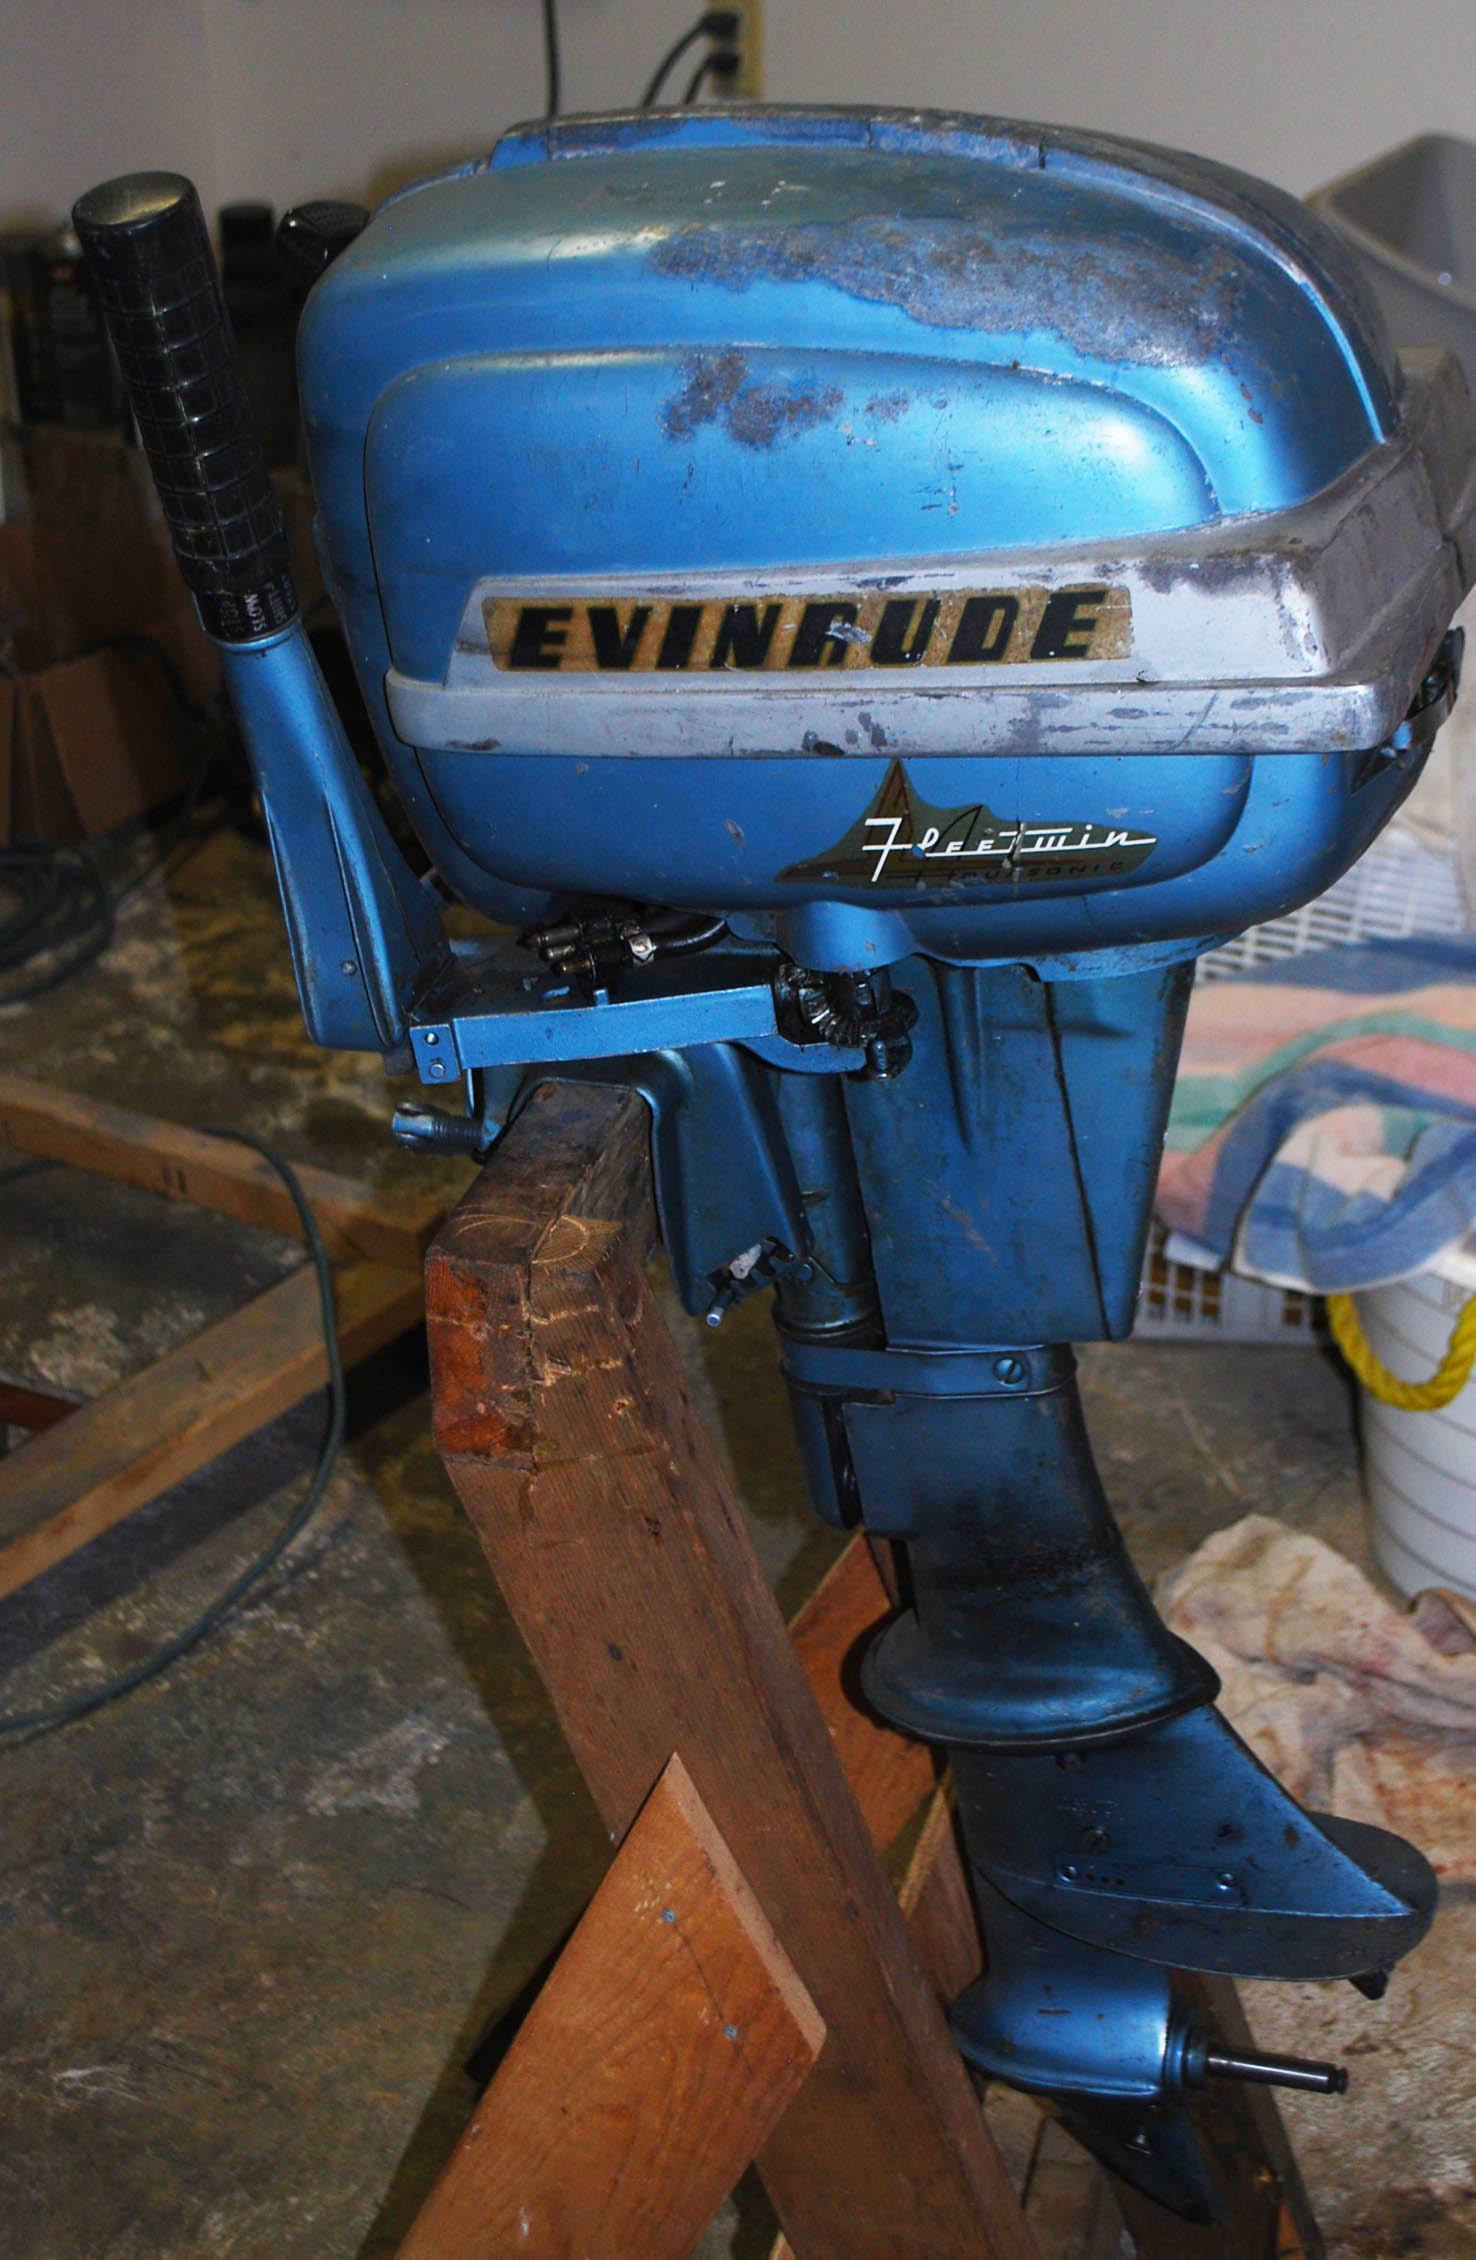 Parts for 1953/1954/1955 Evinrude 7 5 HP Outboard Motors